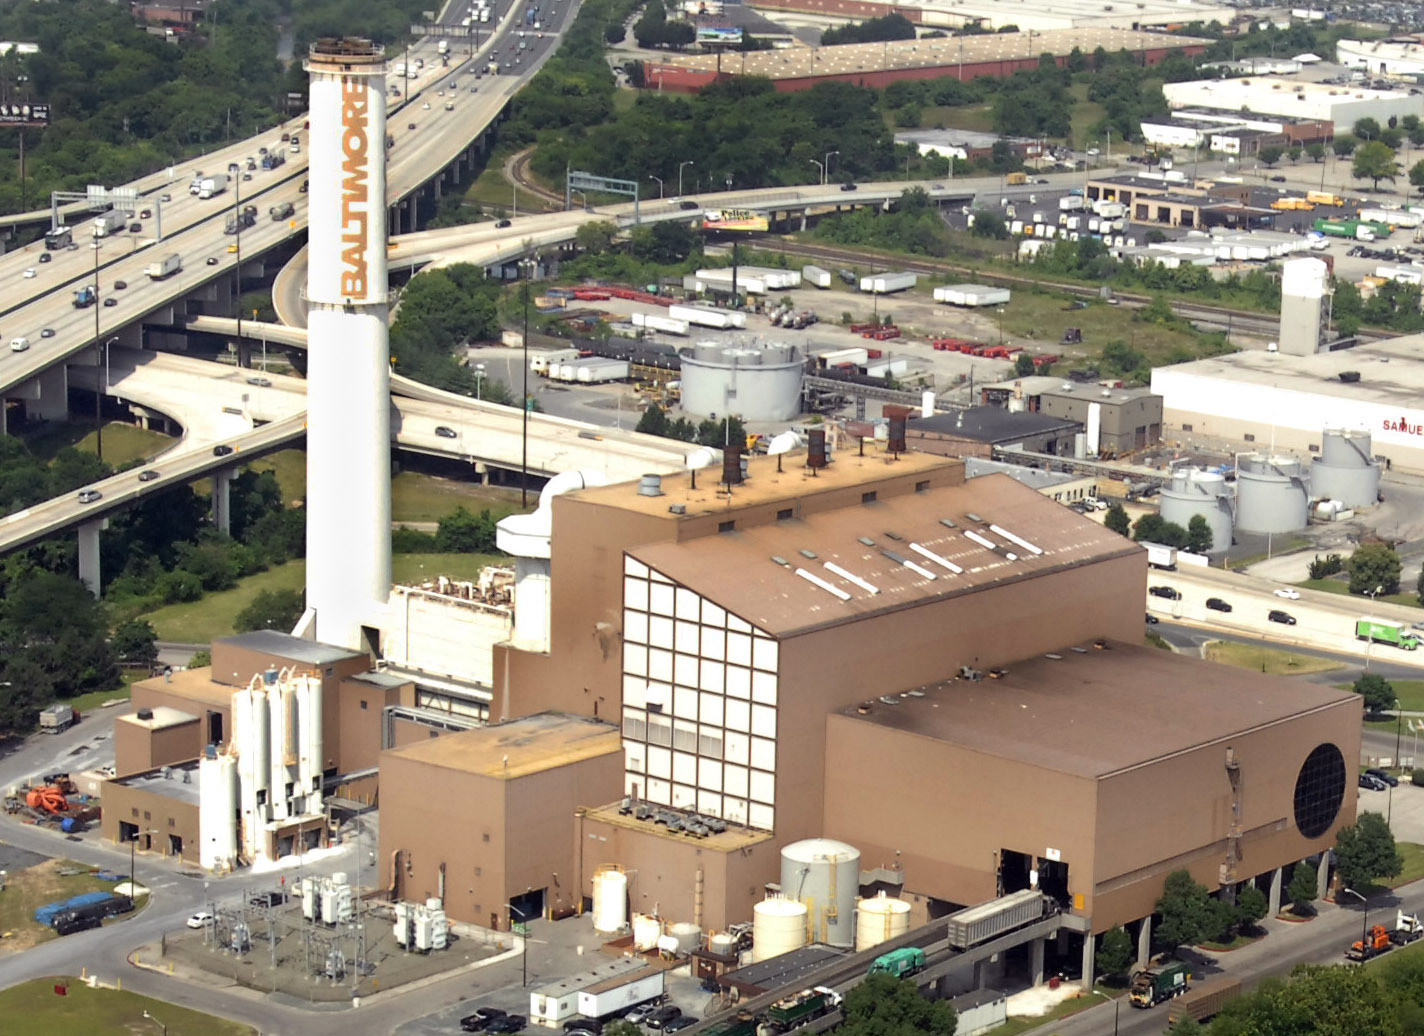 Fl Turkey Point Reactor besides Steam Turbine Condenser Cooling X Px furthermore Solarplant besides Bs Bz Wheelabrator Sold together with Img. on steam turbine power plant